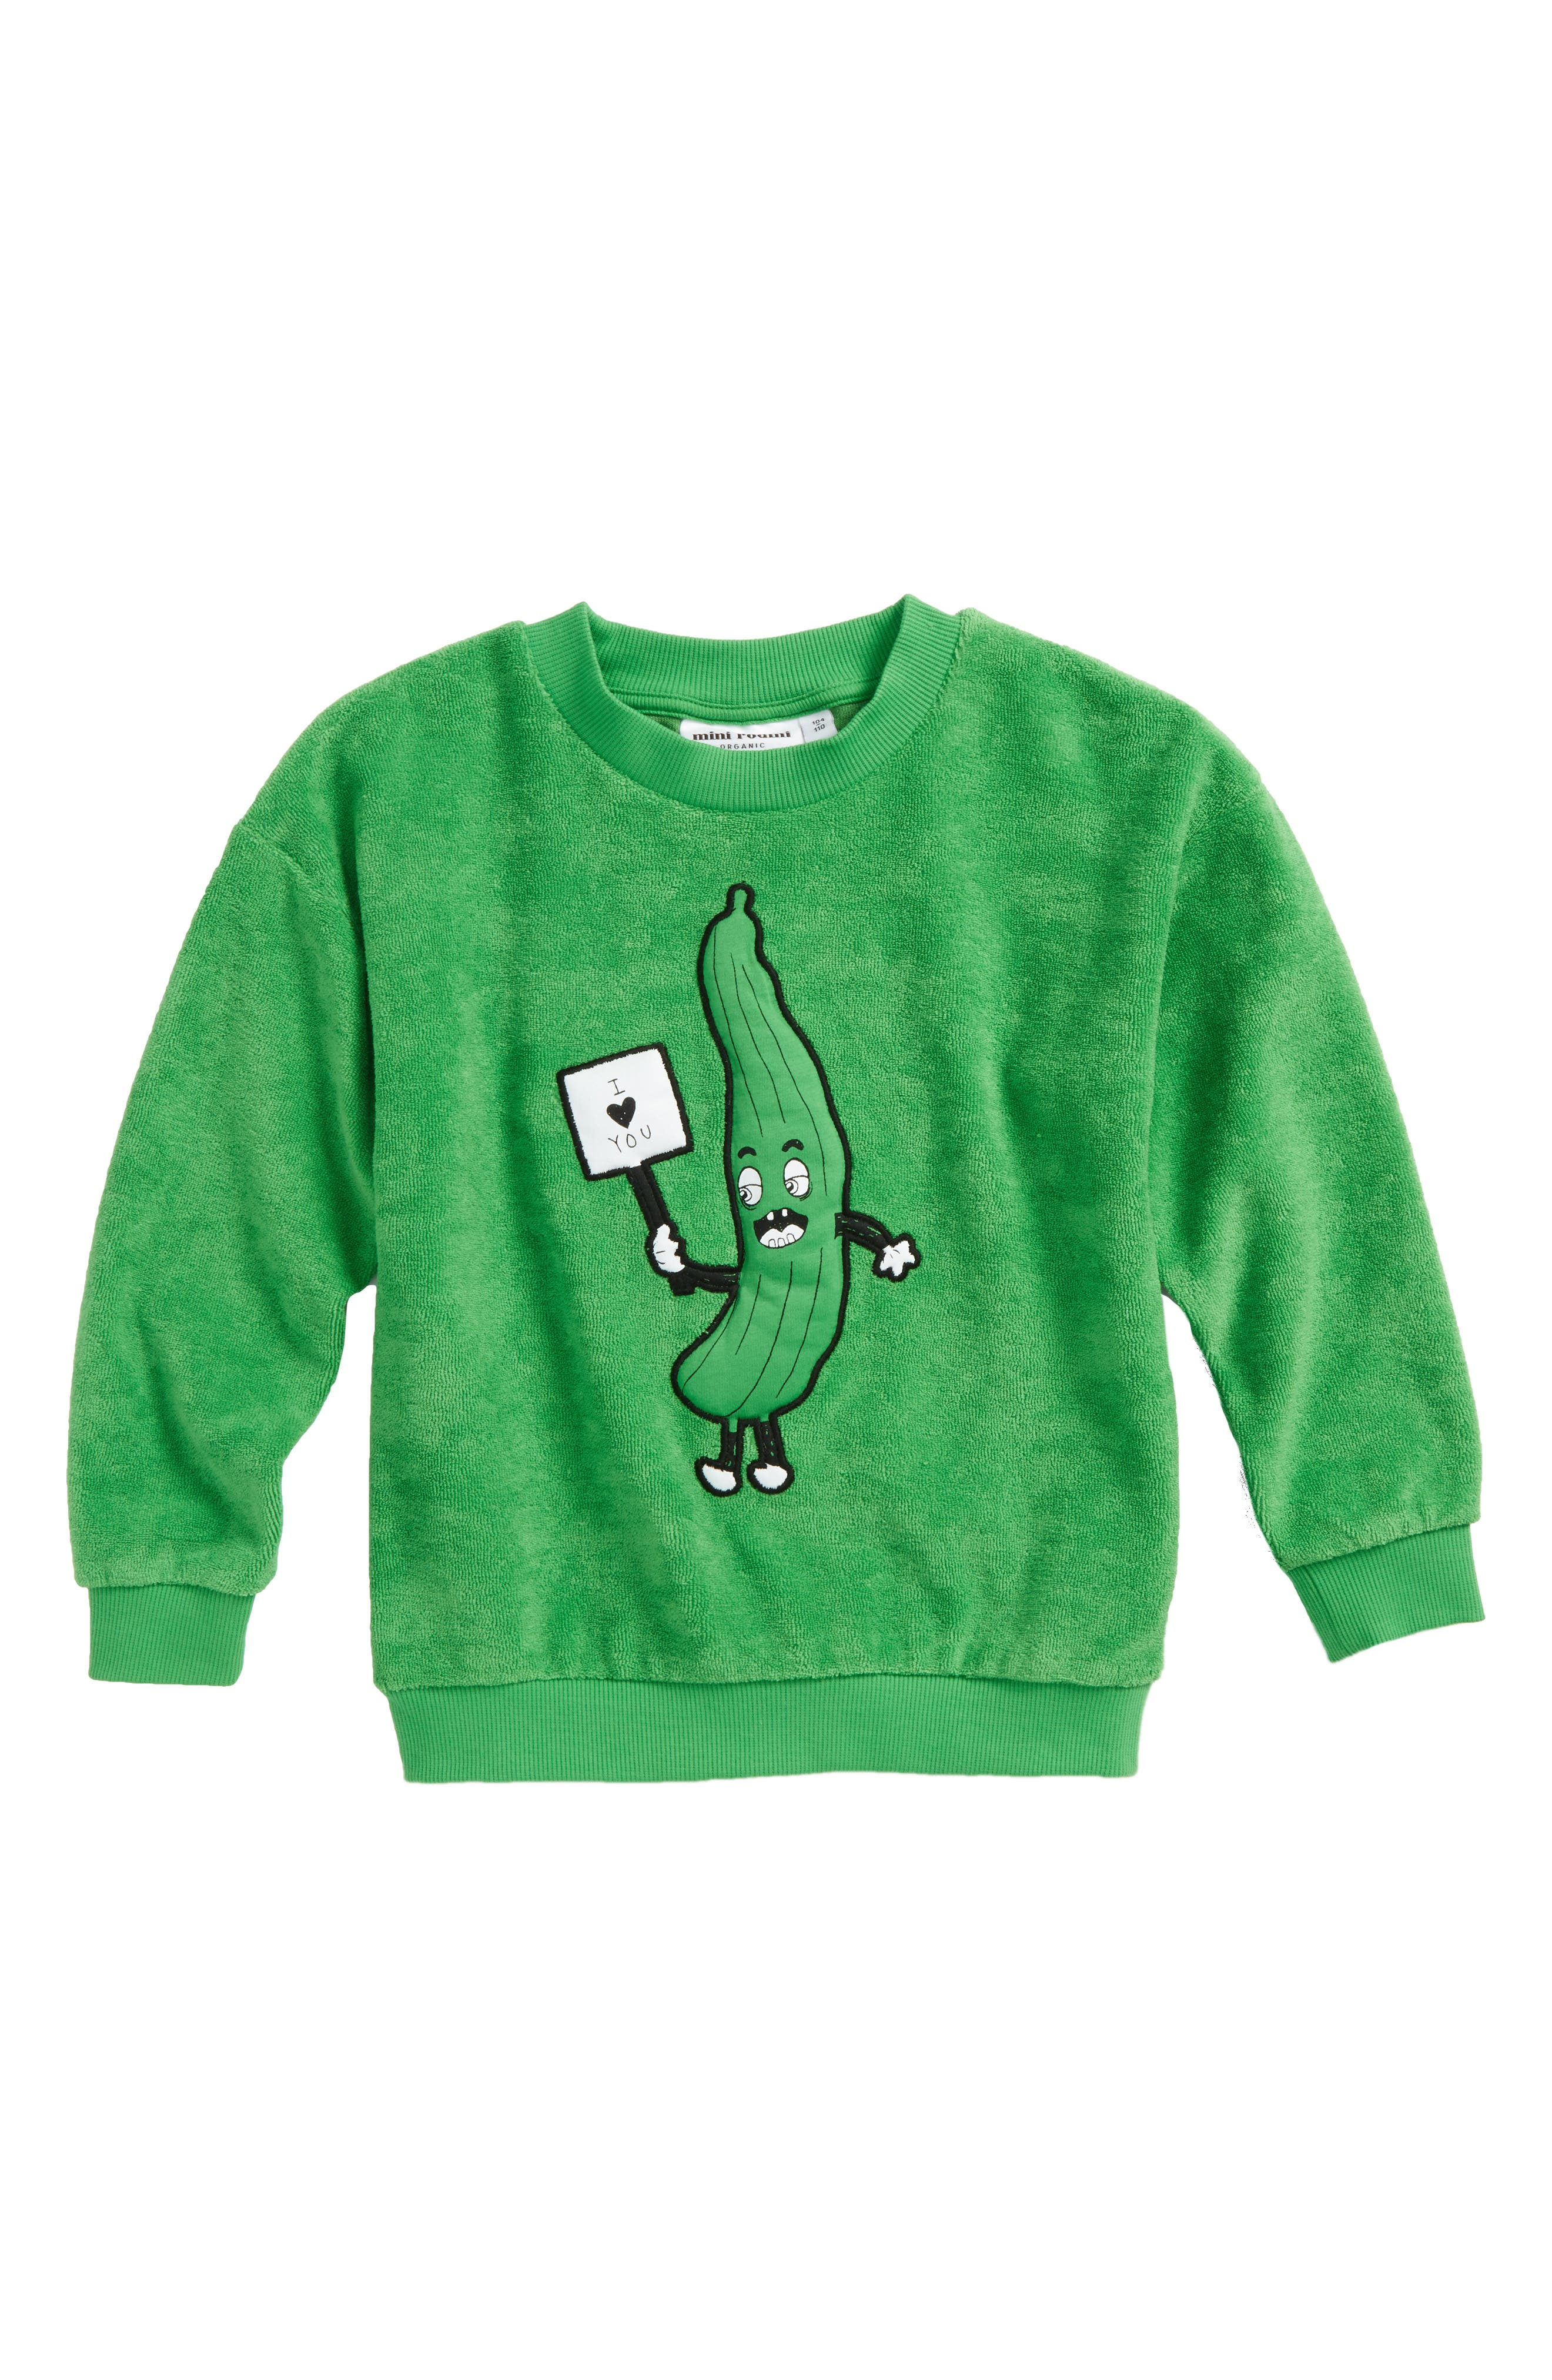 Cucumber Terry Sweatshirt,                             Main thumbnail 1, color,                             Green